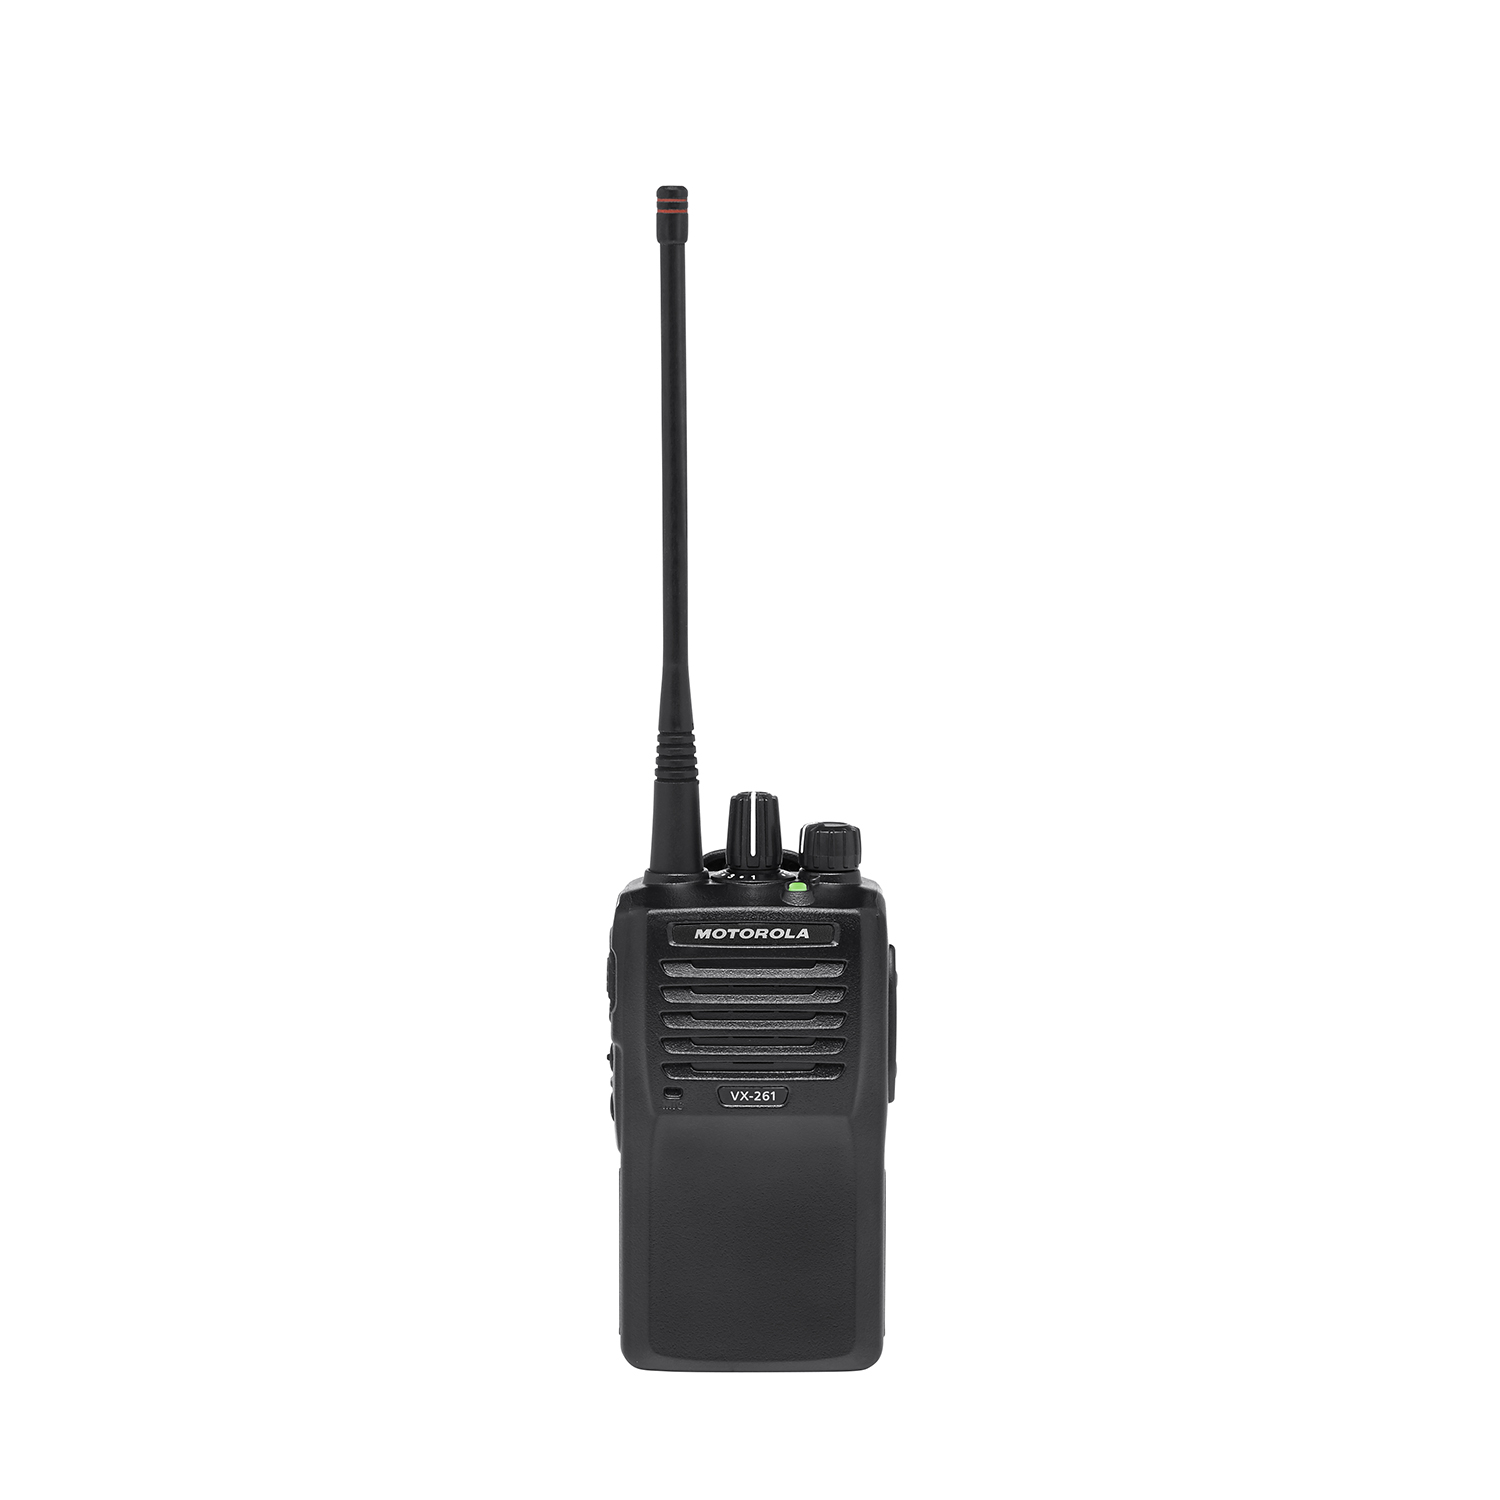 Vh 150a Behind The Head Vox Lightweight Headset With Compatible Voice Activated Switch Kit Vx 261 Portable Two Way Radio